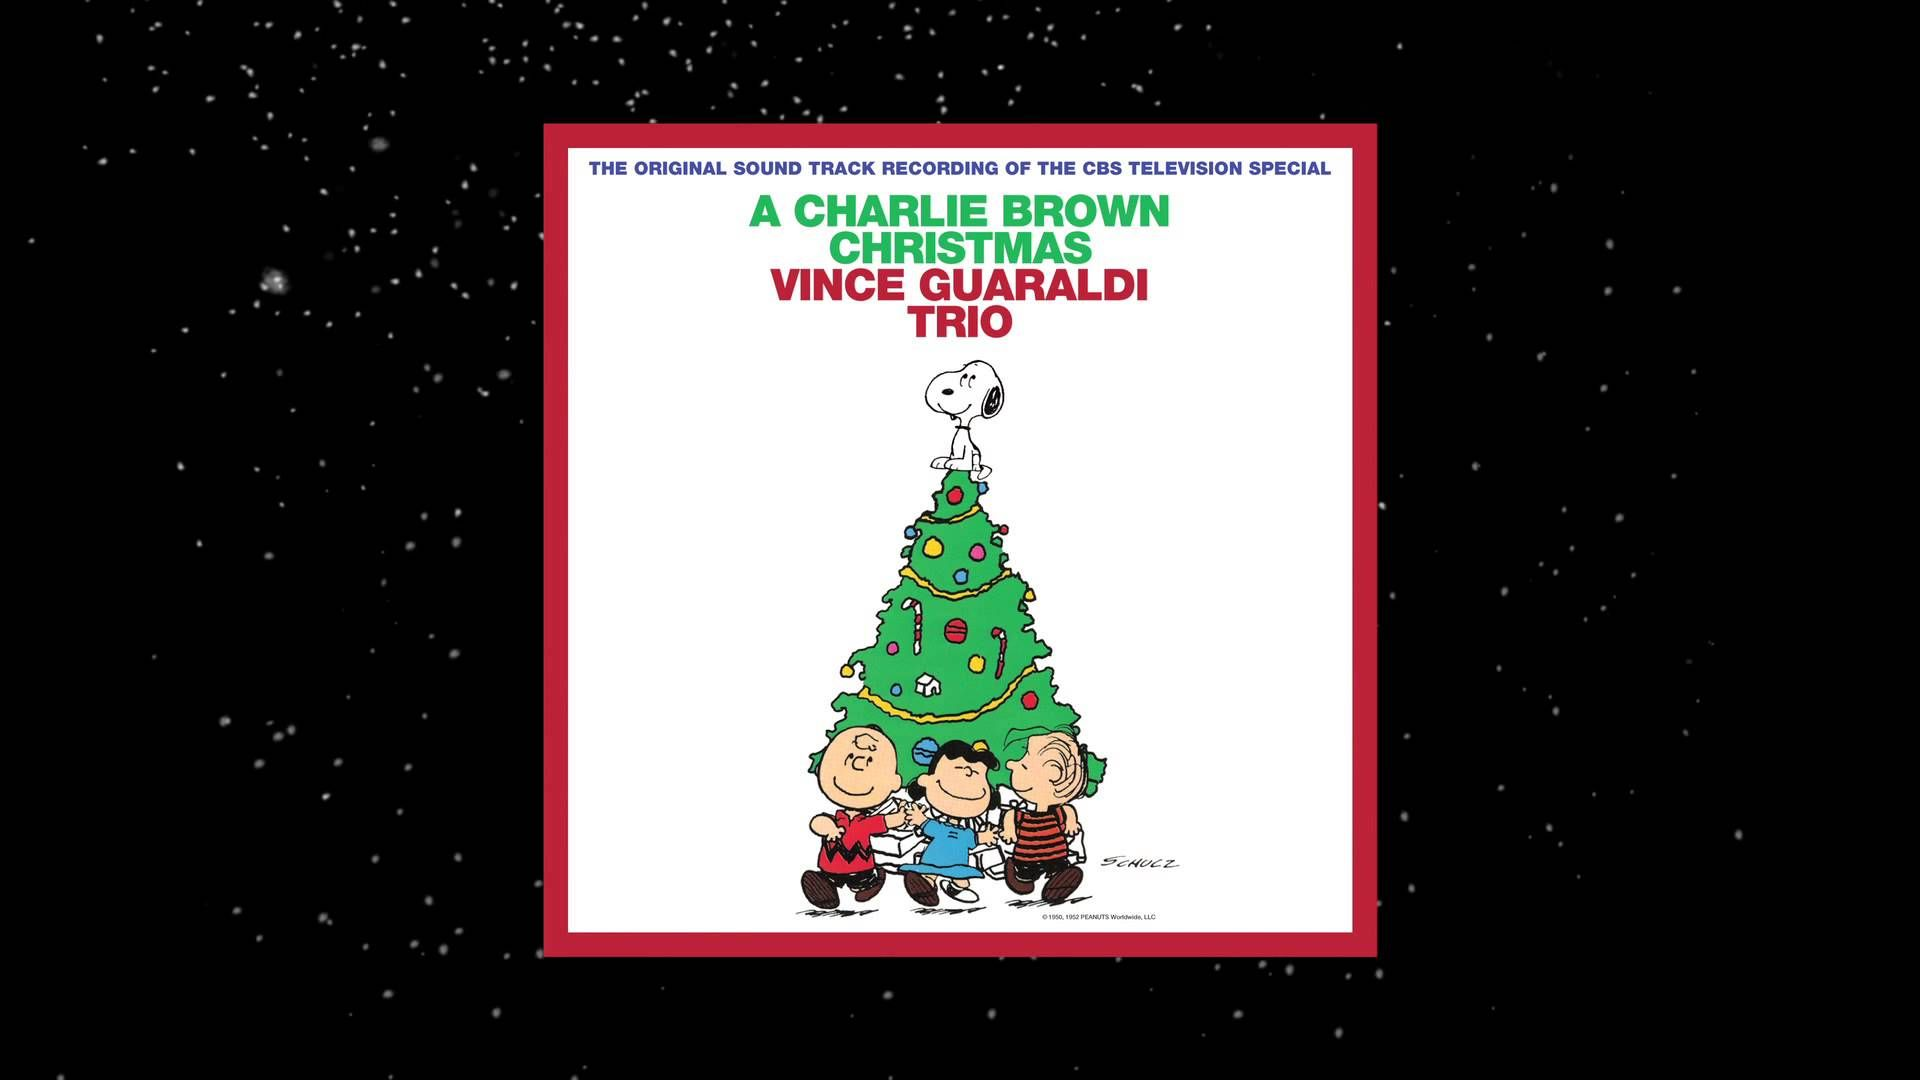 Vince Guaraldi Trio Great Pumpkin Waltz With Images Vince Guaraldi